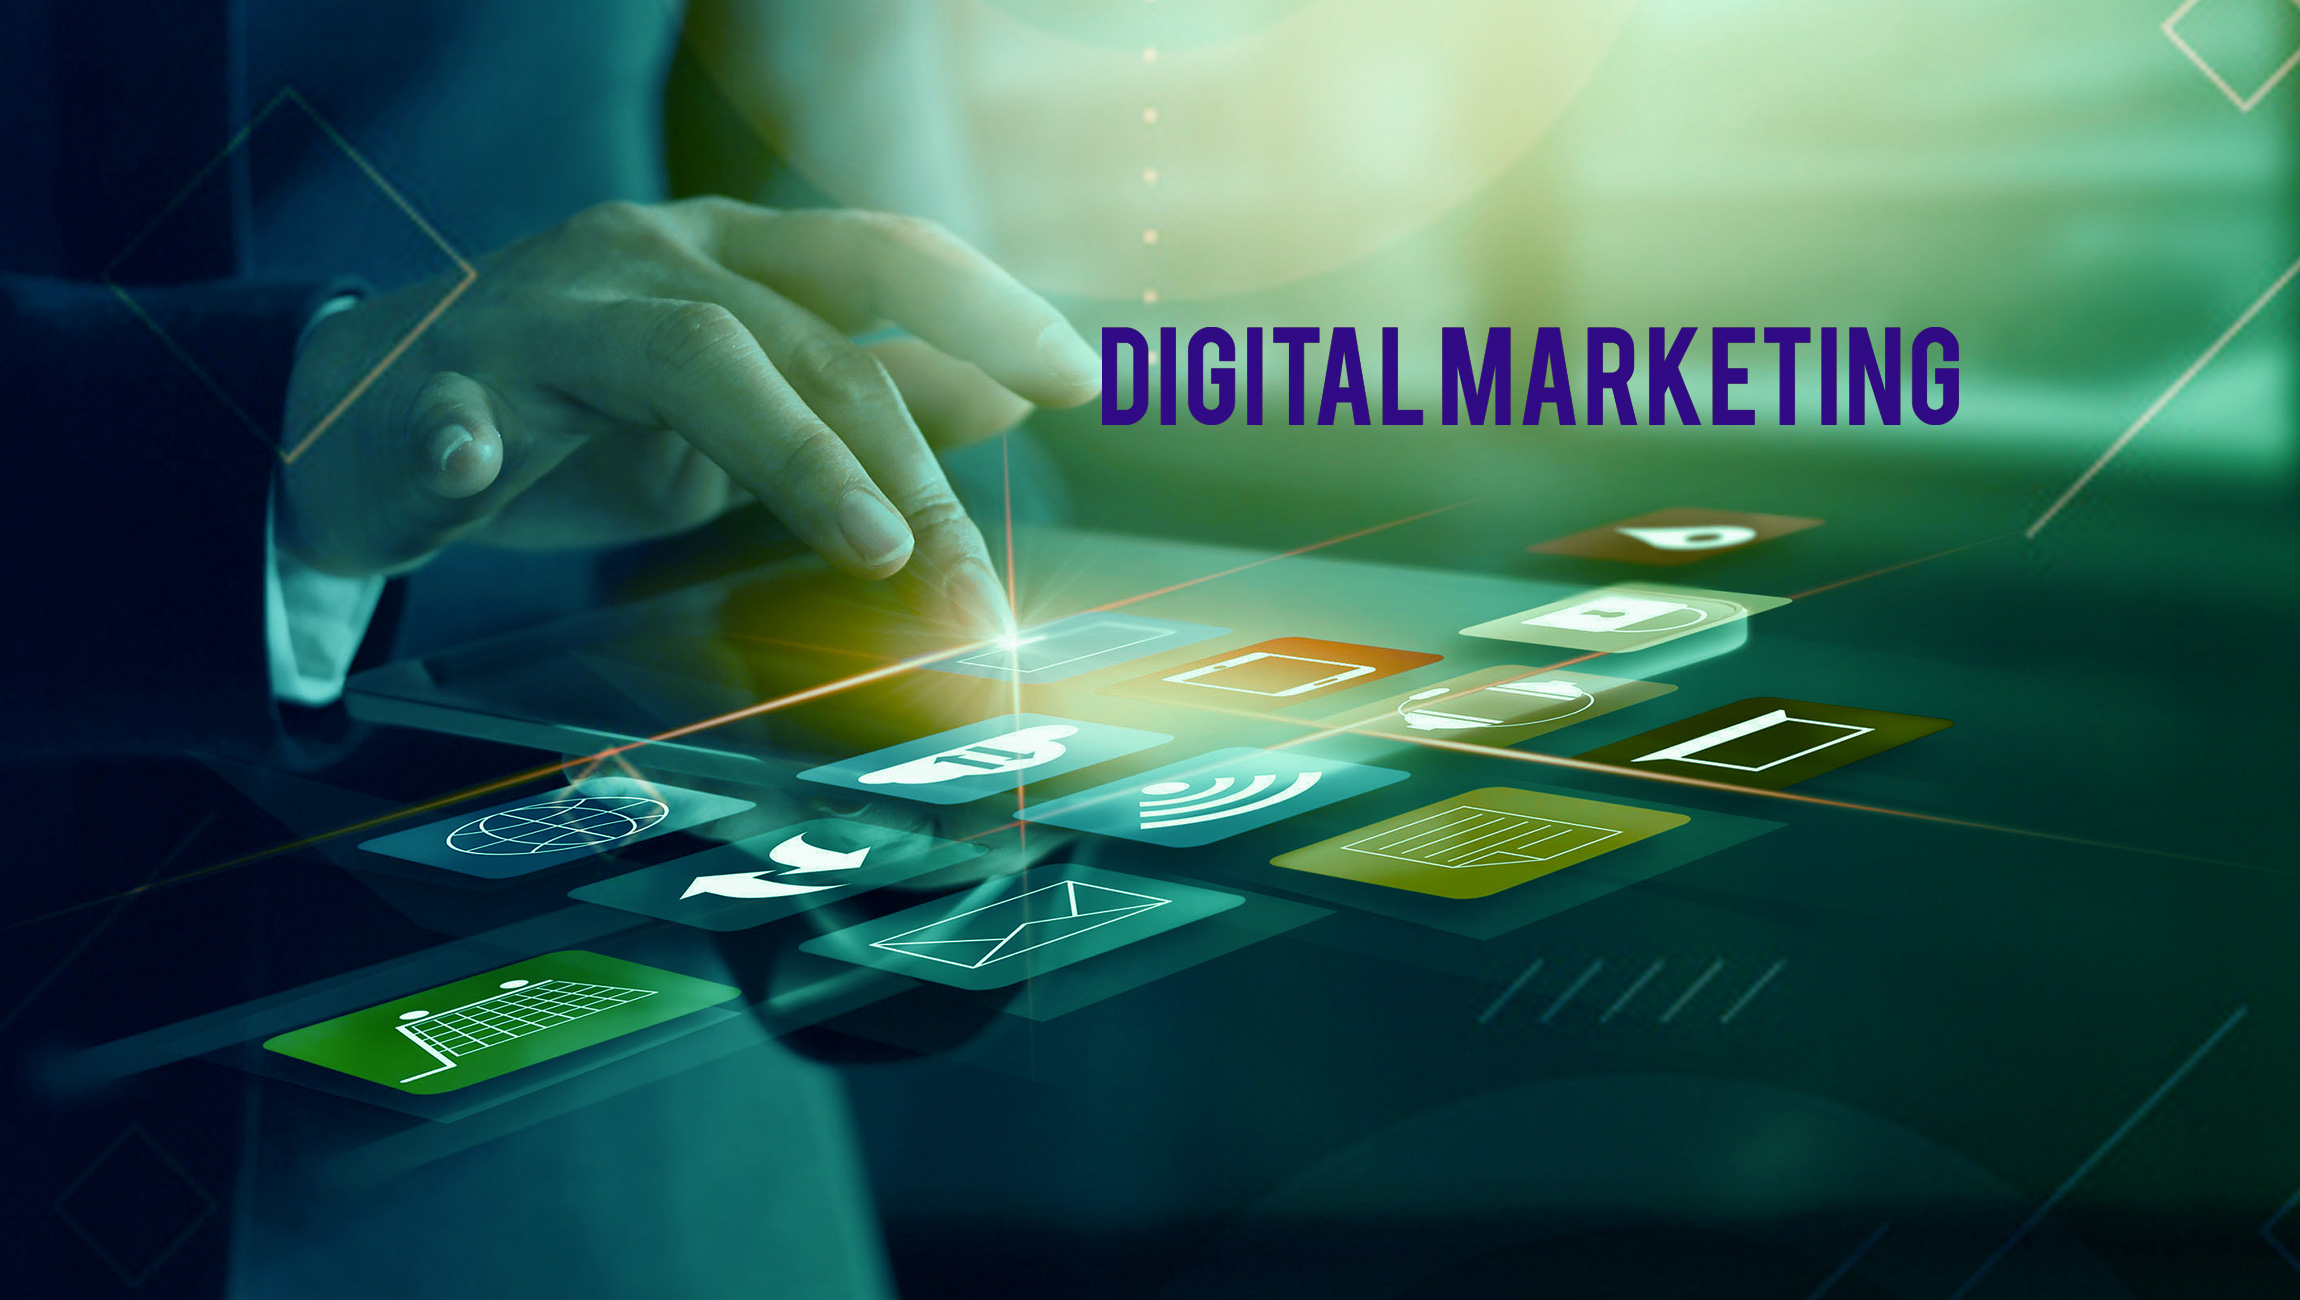 Points to be remembered before marketing digitally